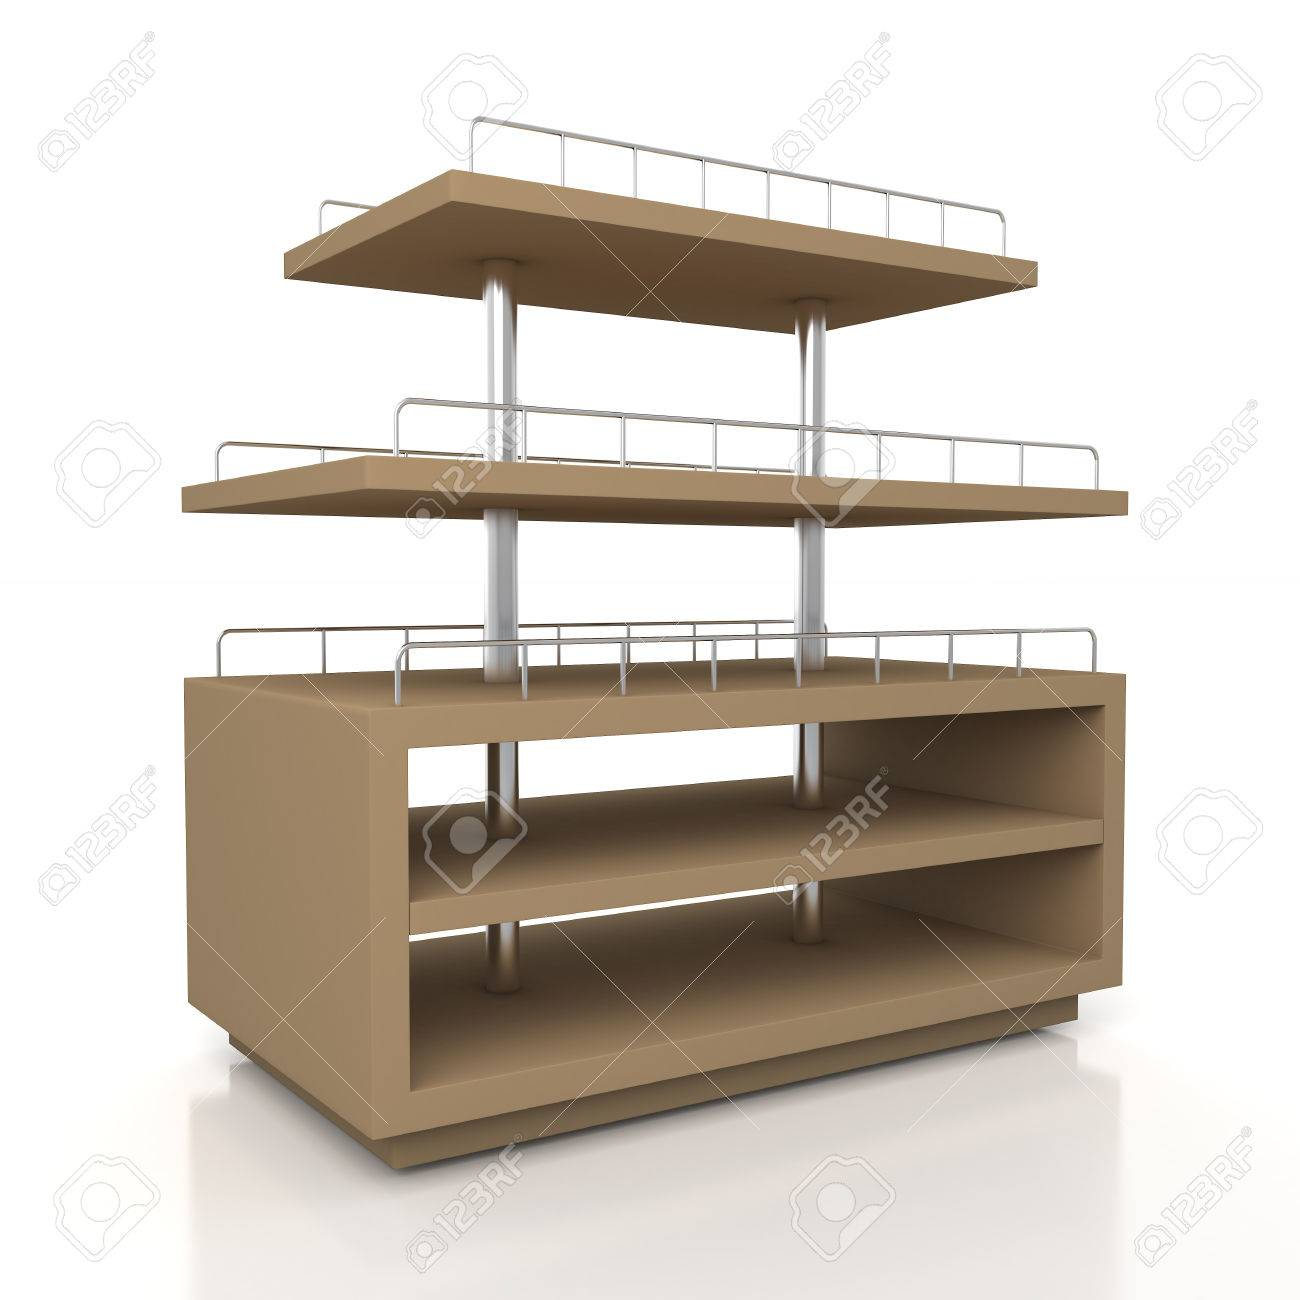 3d Original Brown Racks Shelves For Bakery Products Showing In